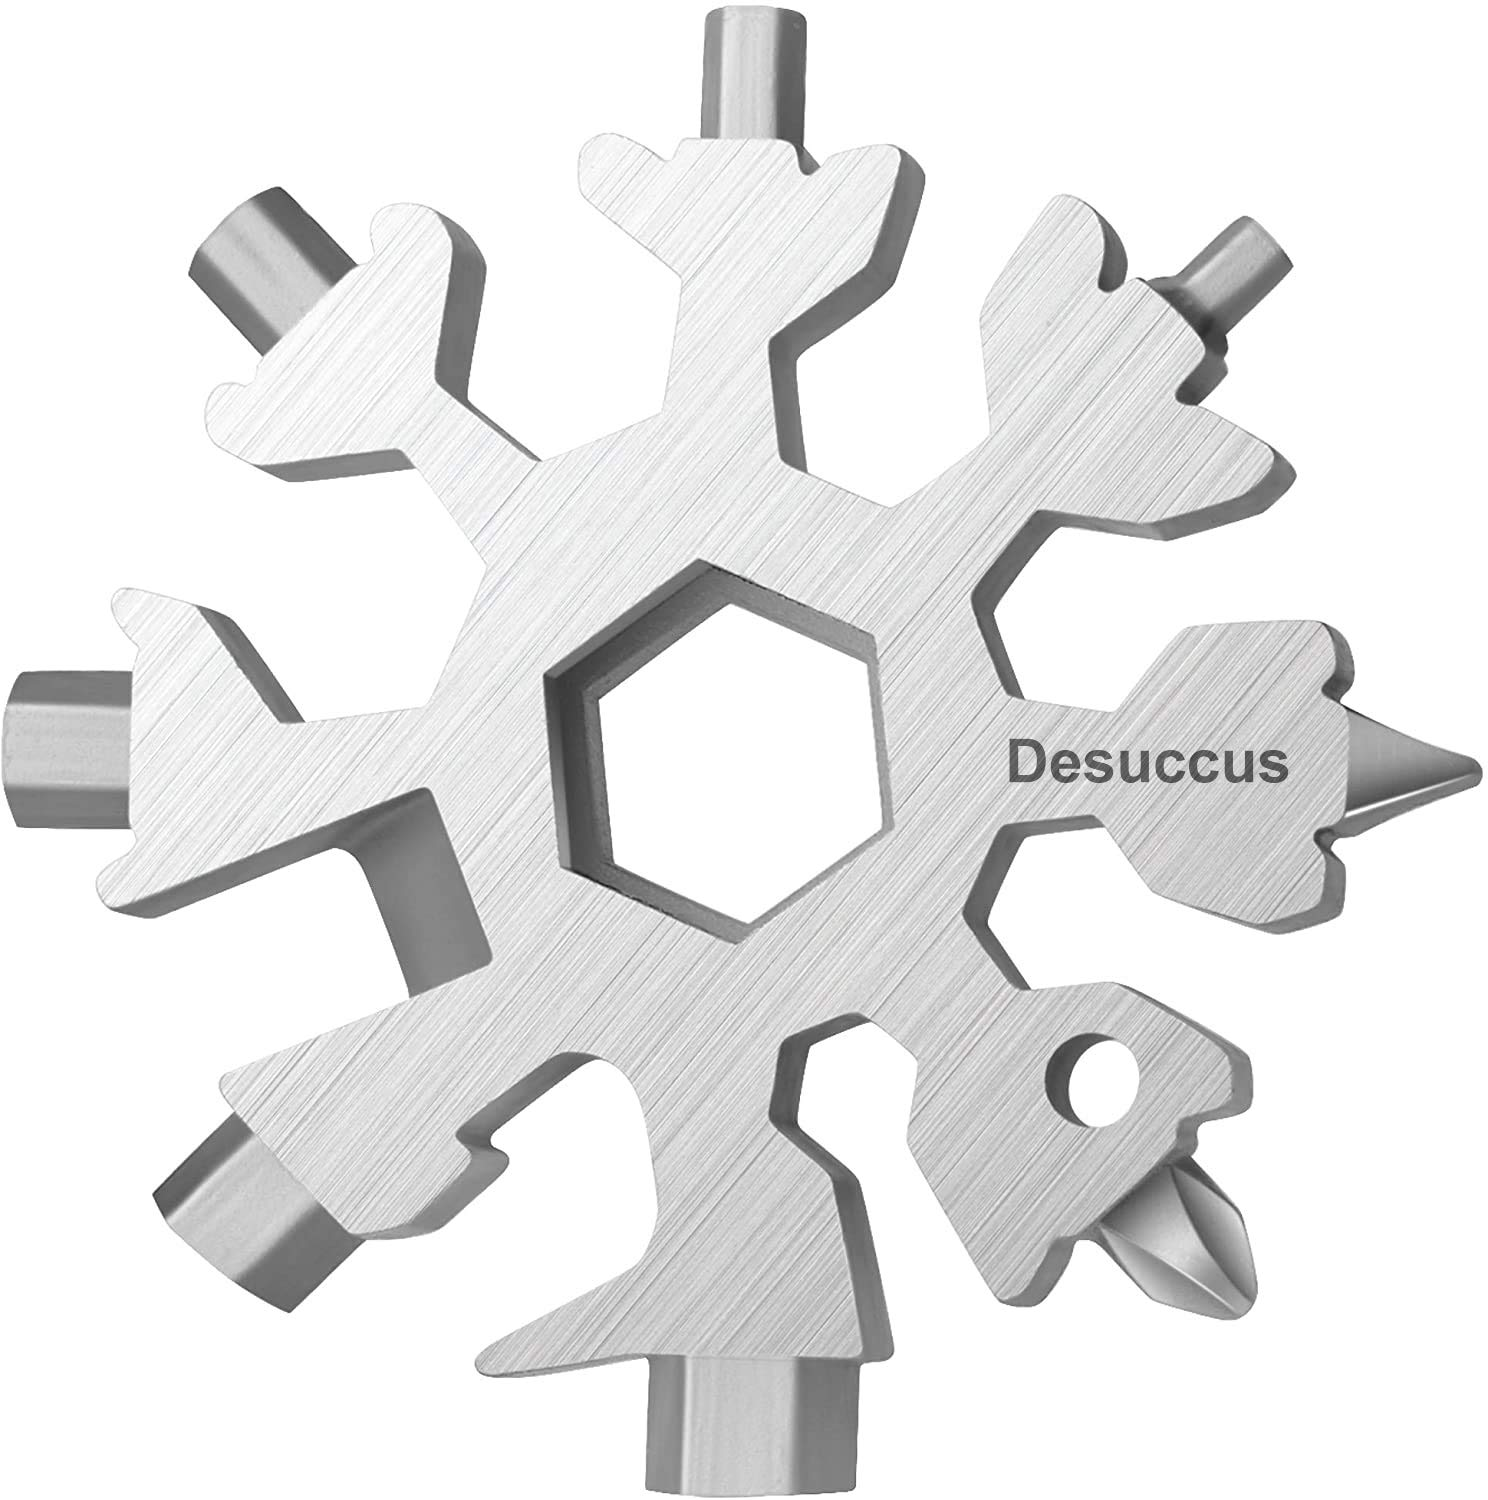 Desuccus 18-in-1 Snowflake Multi Tool, Stainless Steel Snowflake Bottle Opener/Flat Phillips Screwdriver Kit/Wrench, Durable and Portable to Take, Great Christmas gift(Standard, Stainless Steel).